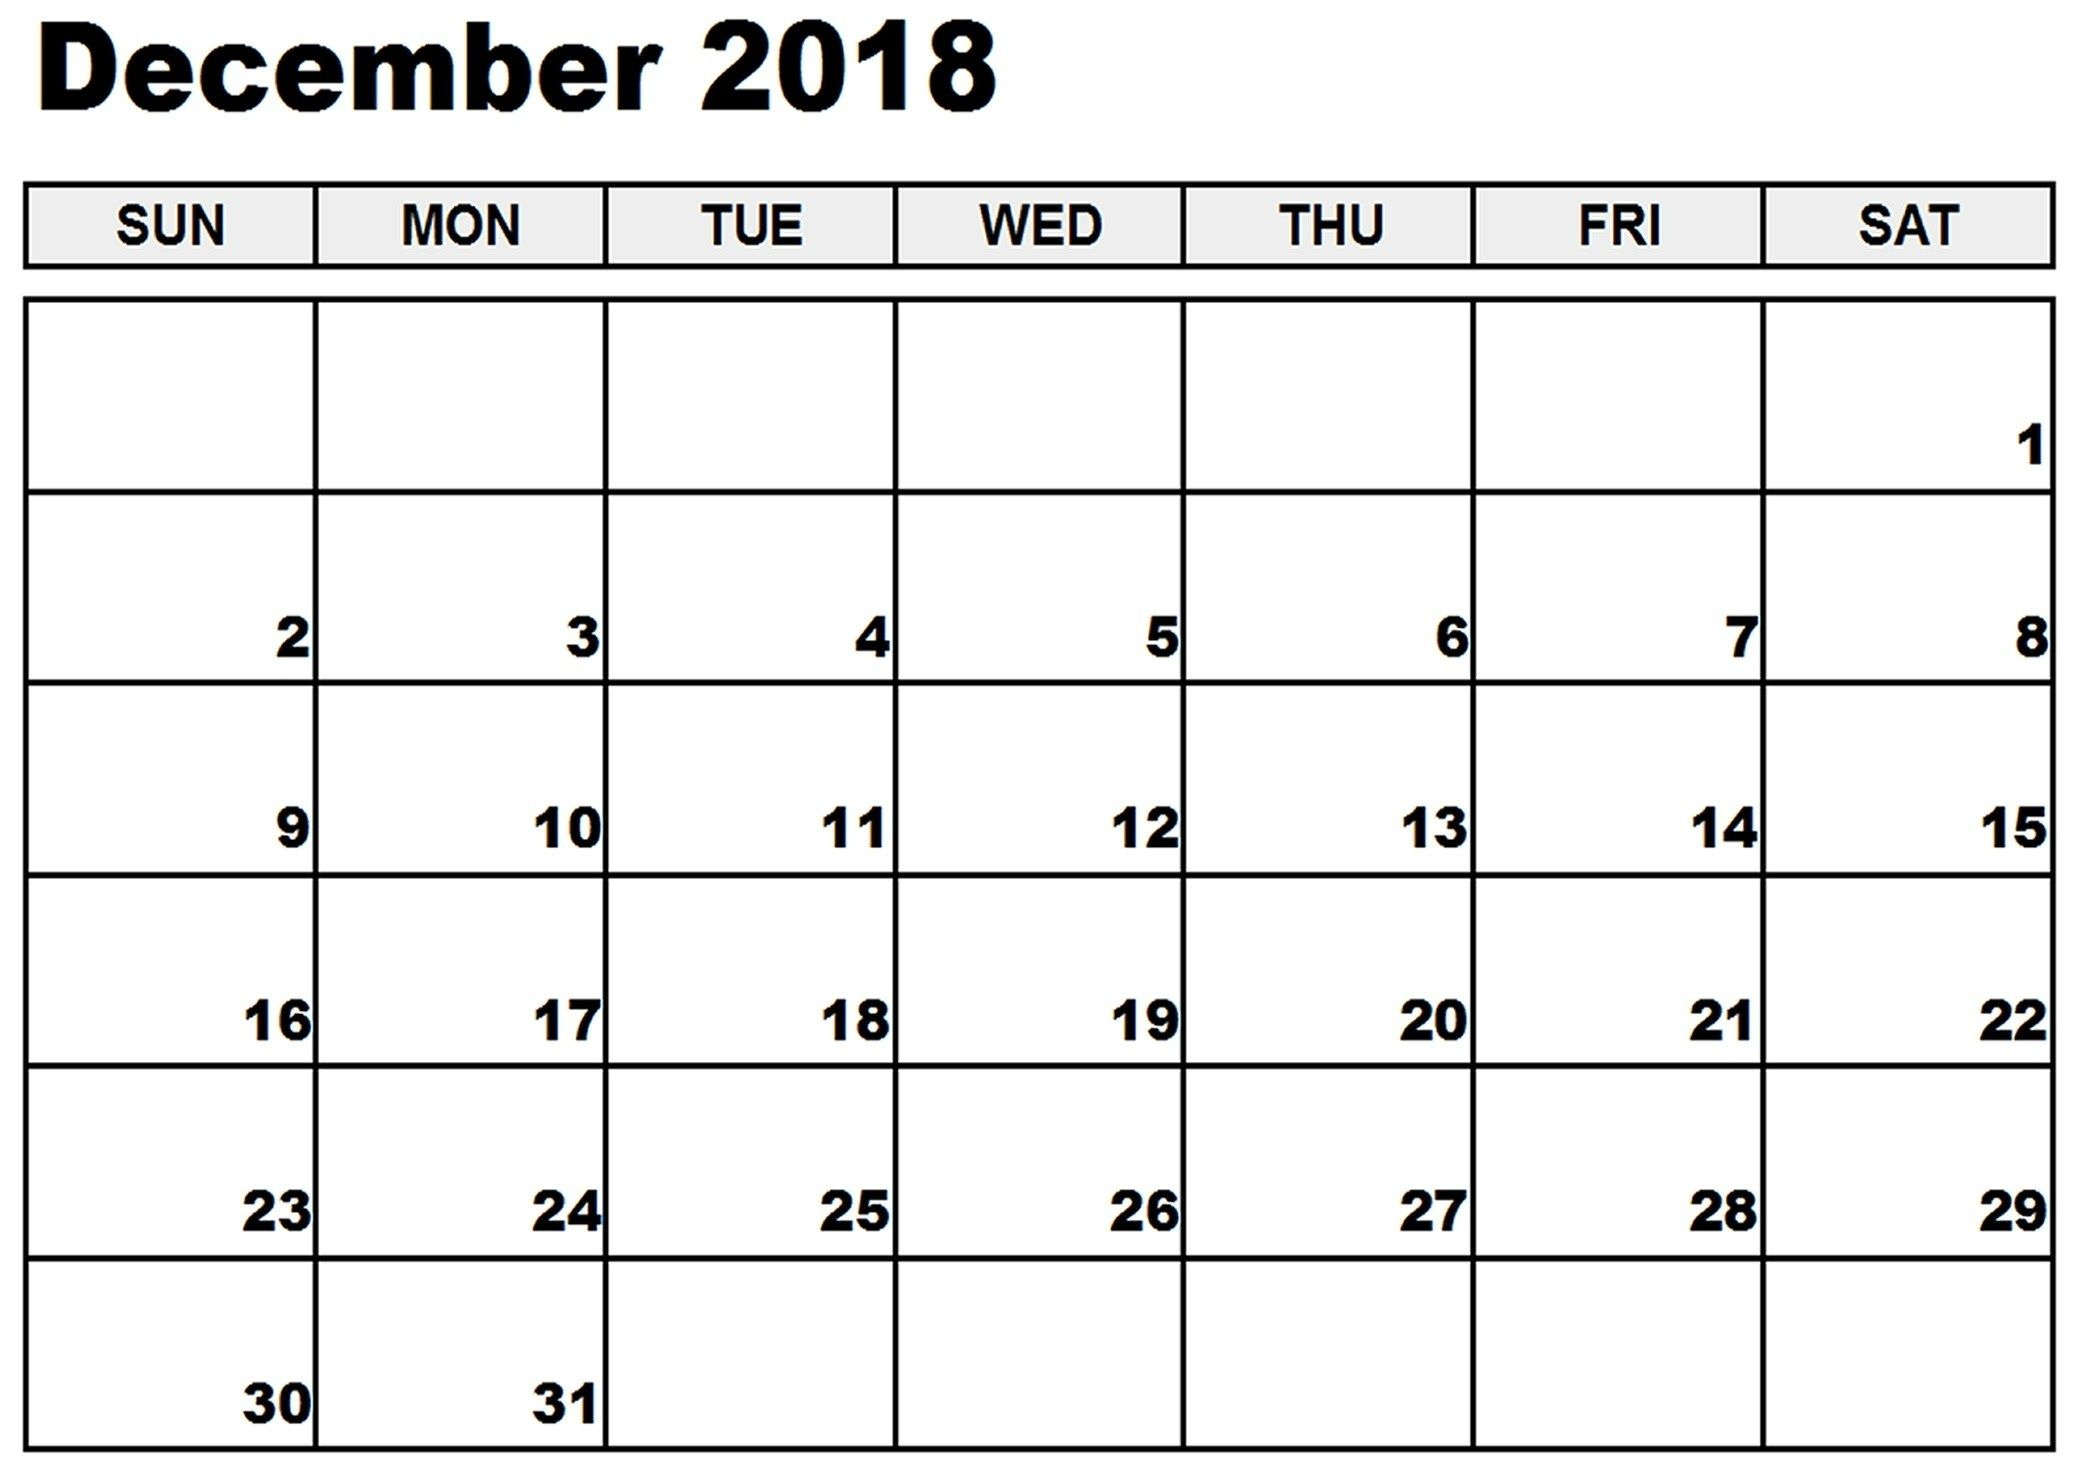 December 2018 Printable Calendar Notes To Do List Reminders